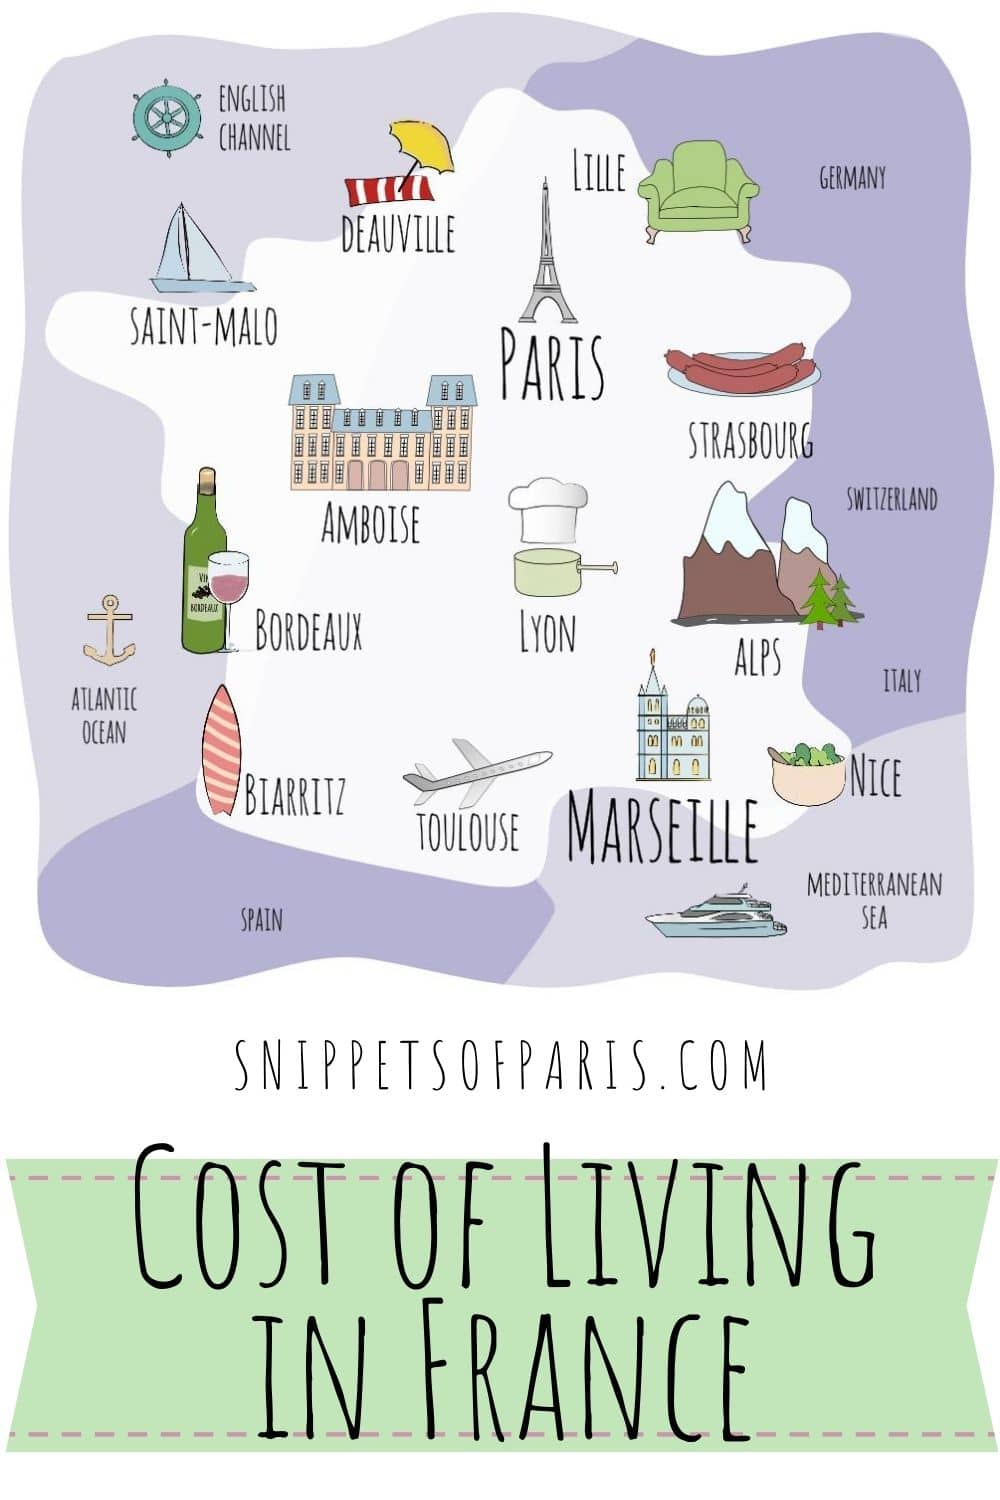 Cost of Living in France: What to Budget